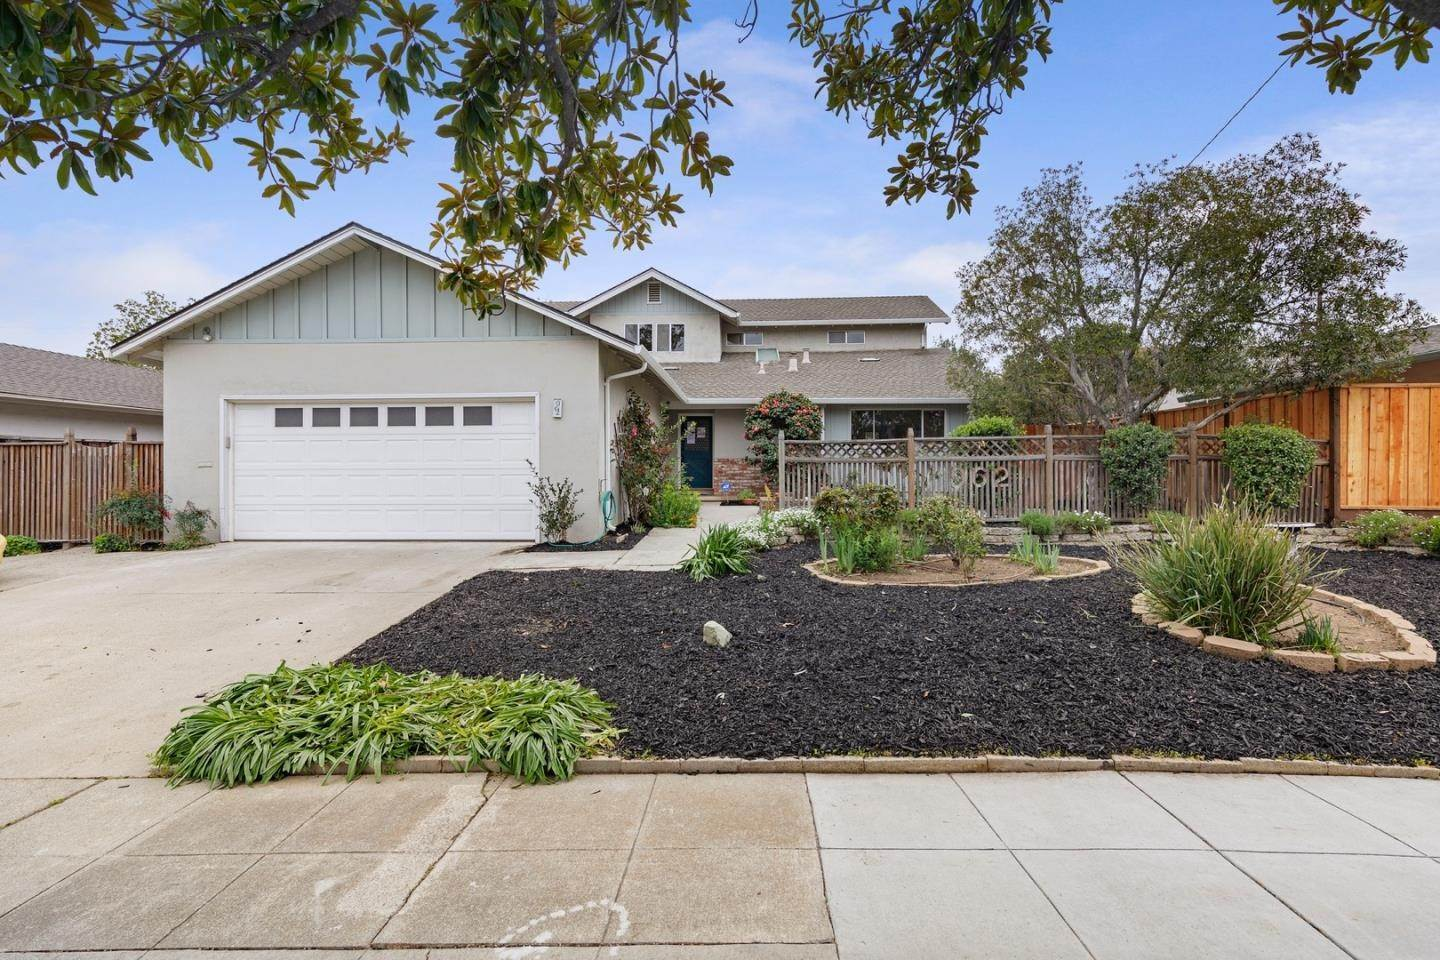 Single Family Homes for Sale at 962 Chehalis Drive Sunnyvale, California 94087 United States